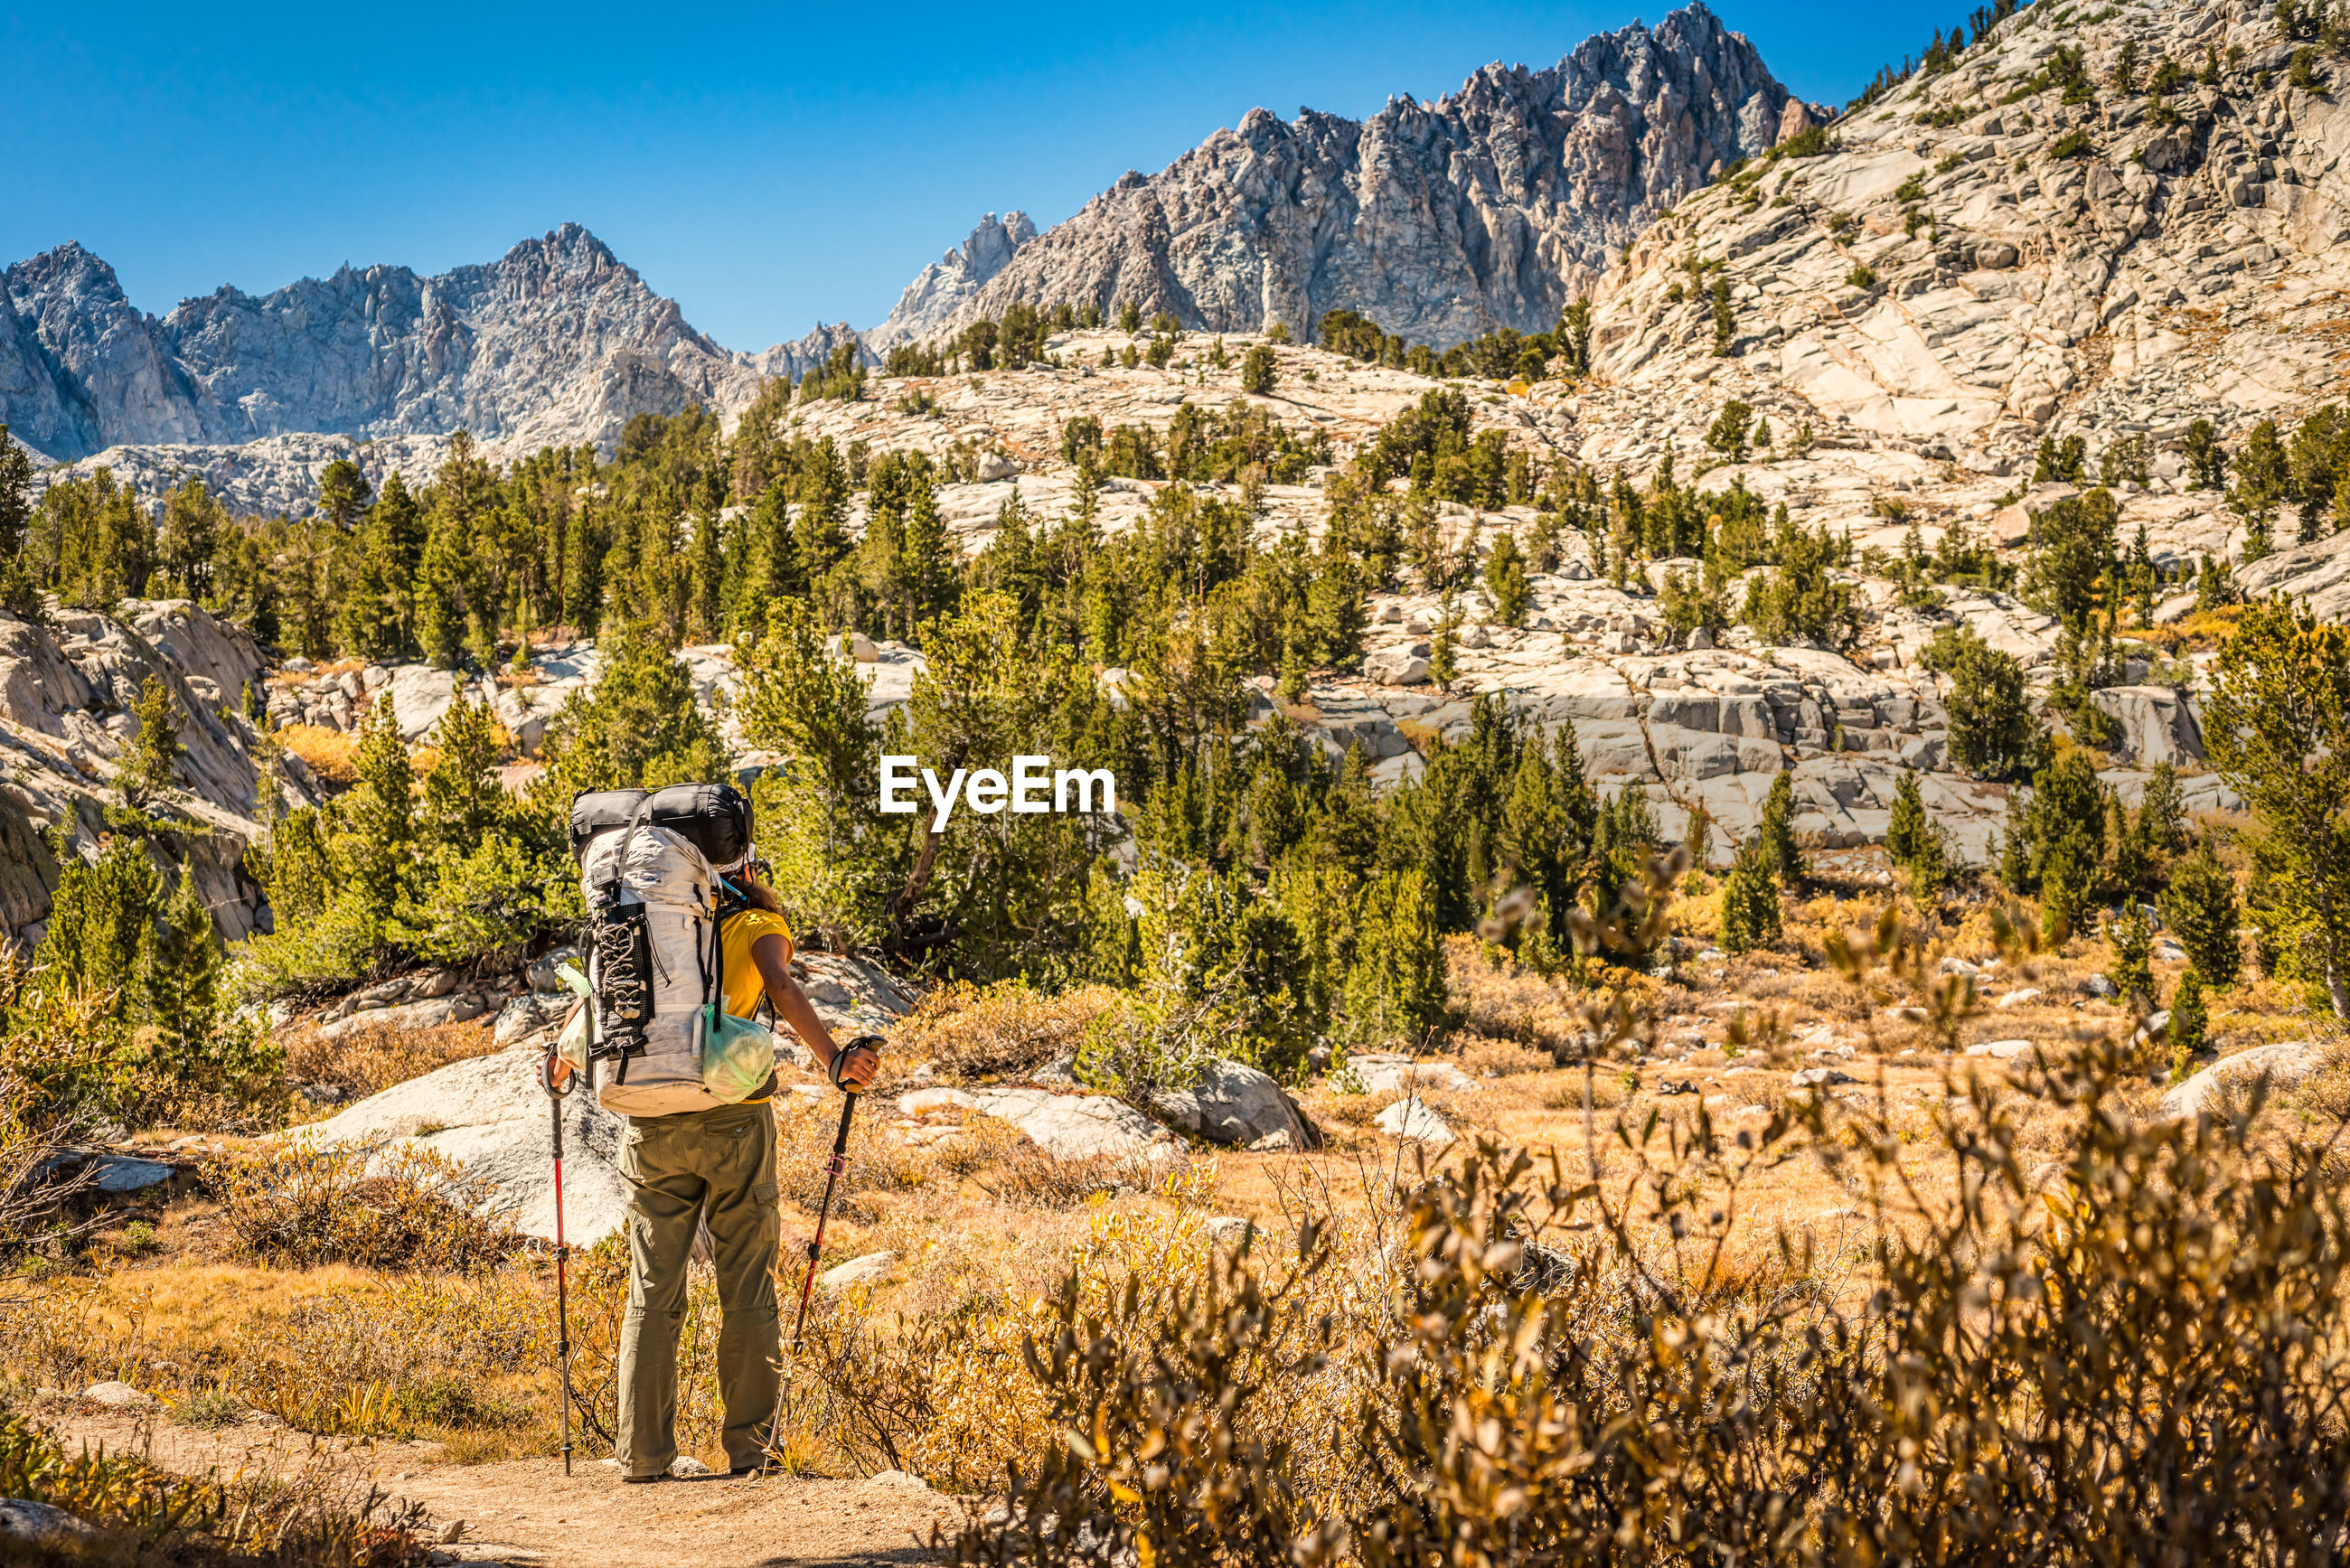 Rear view of hiker holding hiking poles while standing on cliff in front of mountain ranges against sky